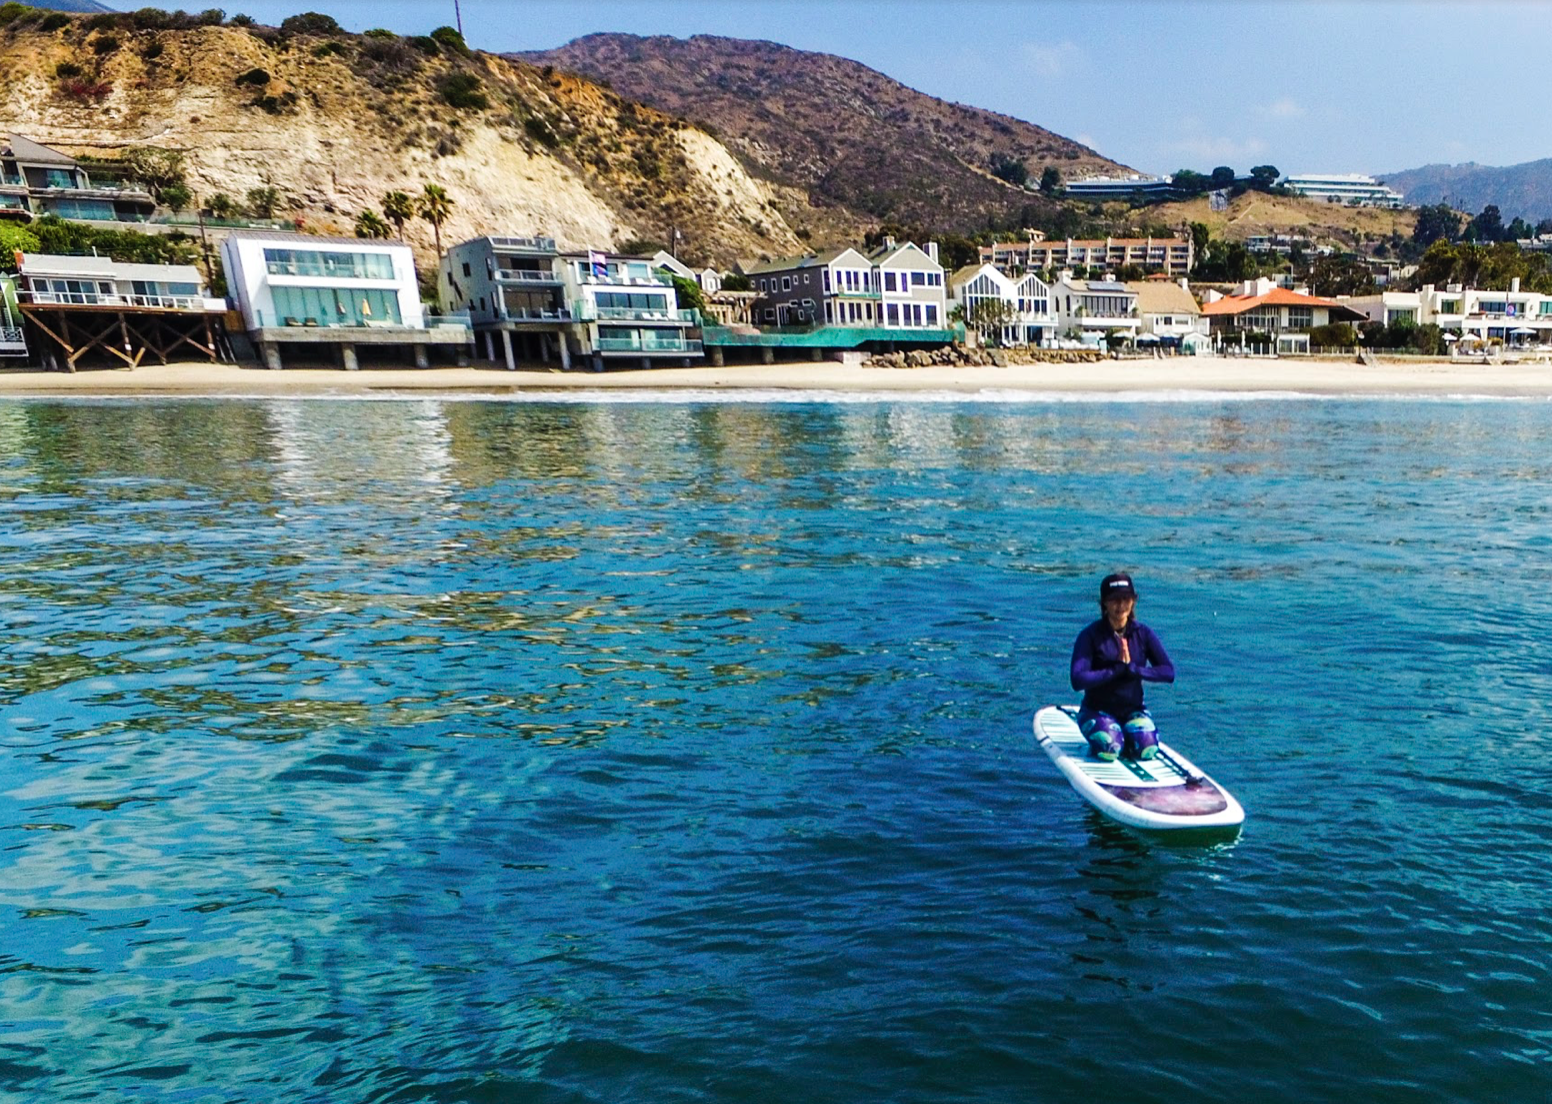 Moon Mist in Malibu surfing sup style and doing yoga namaste